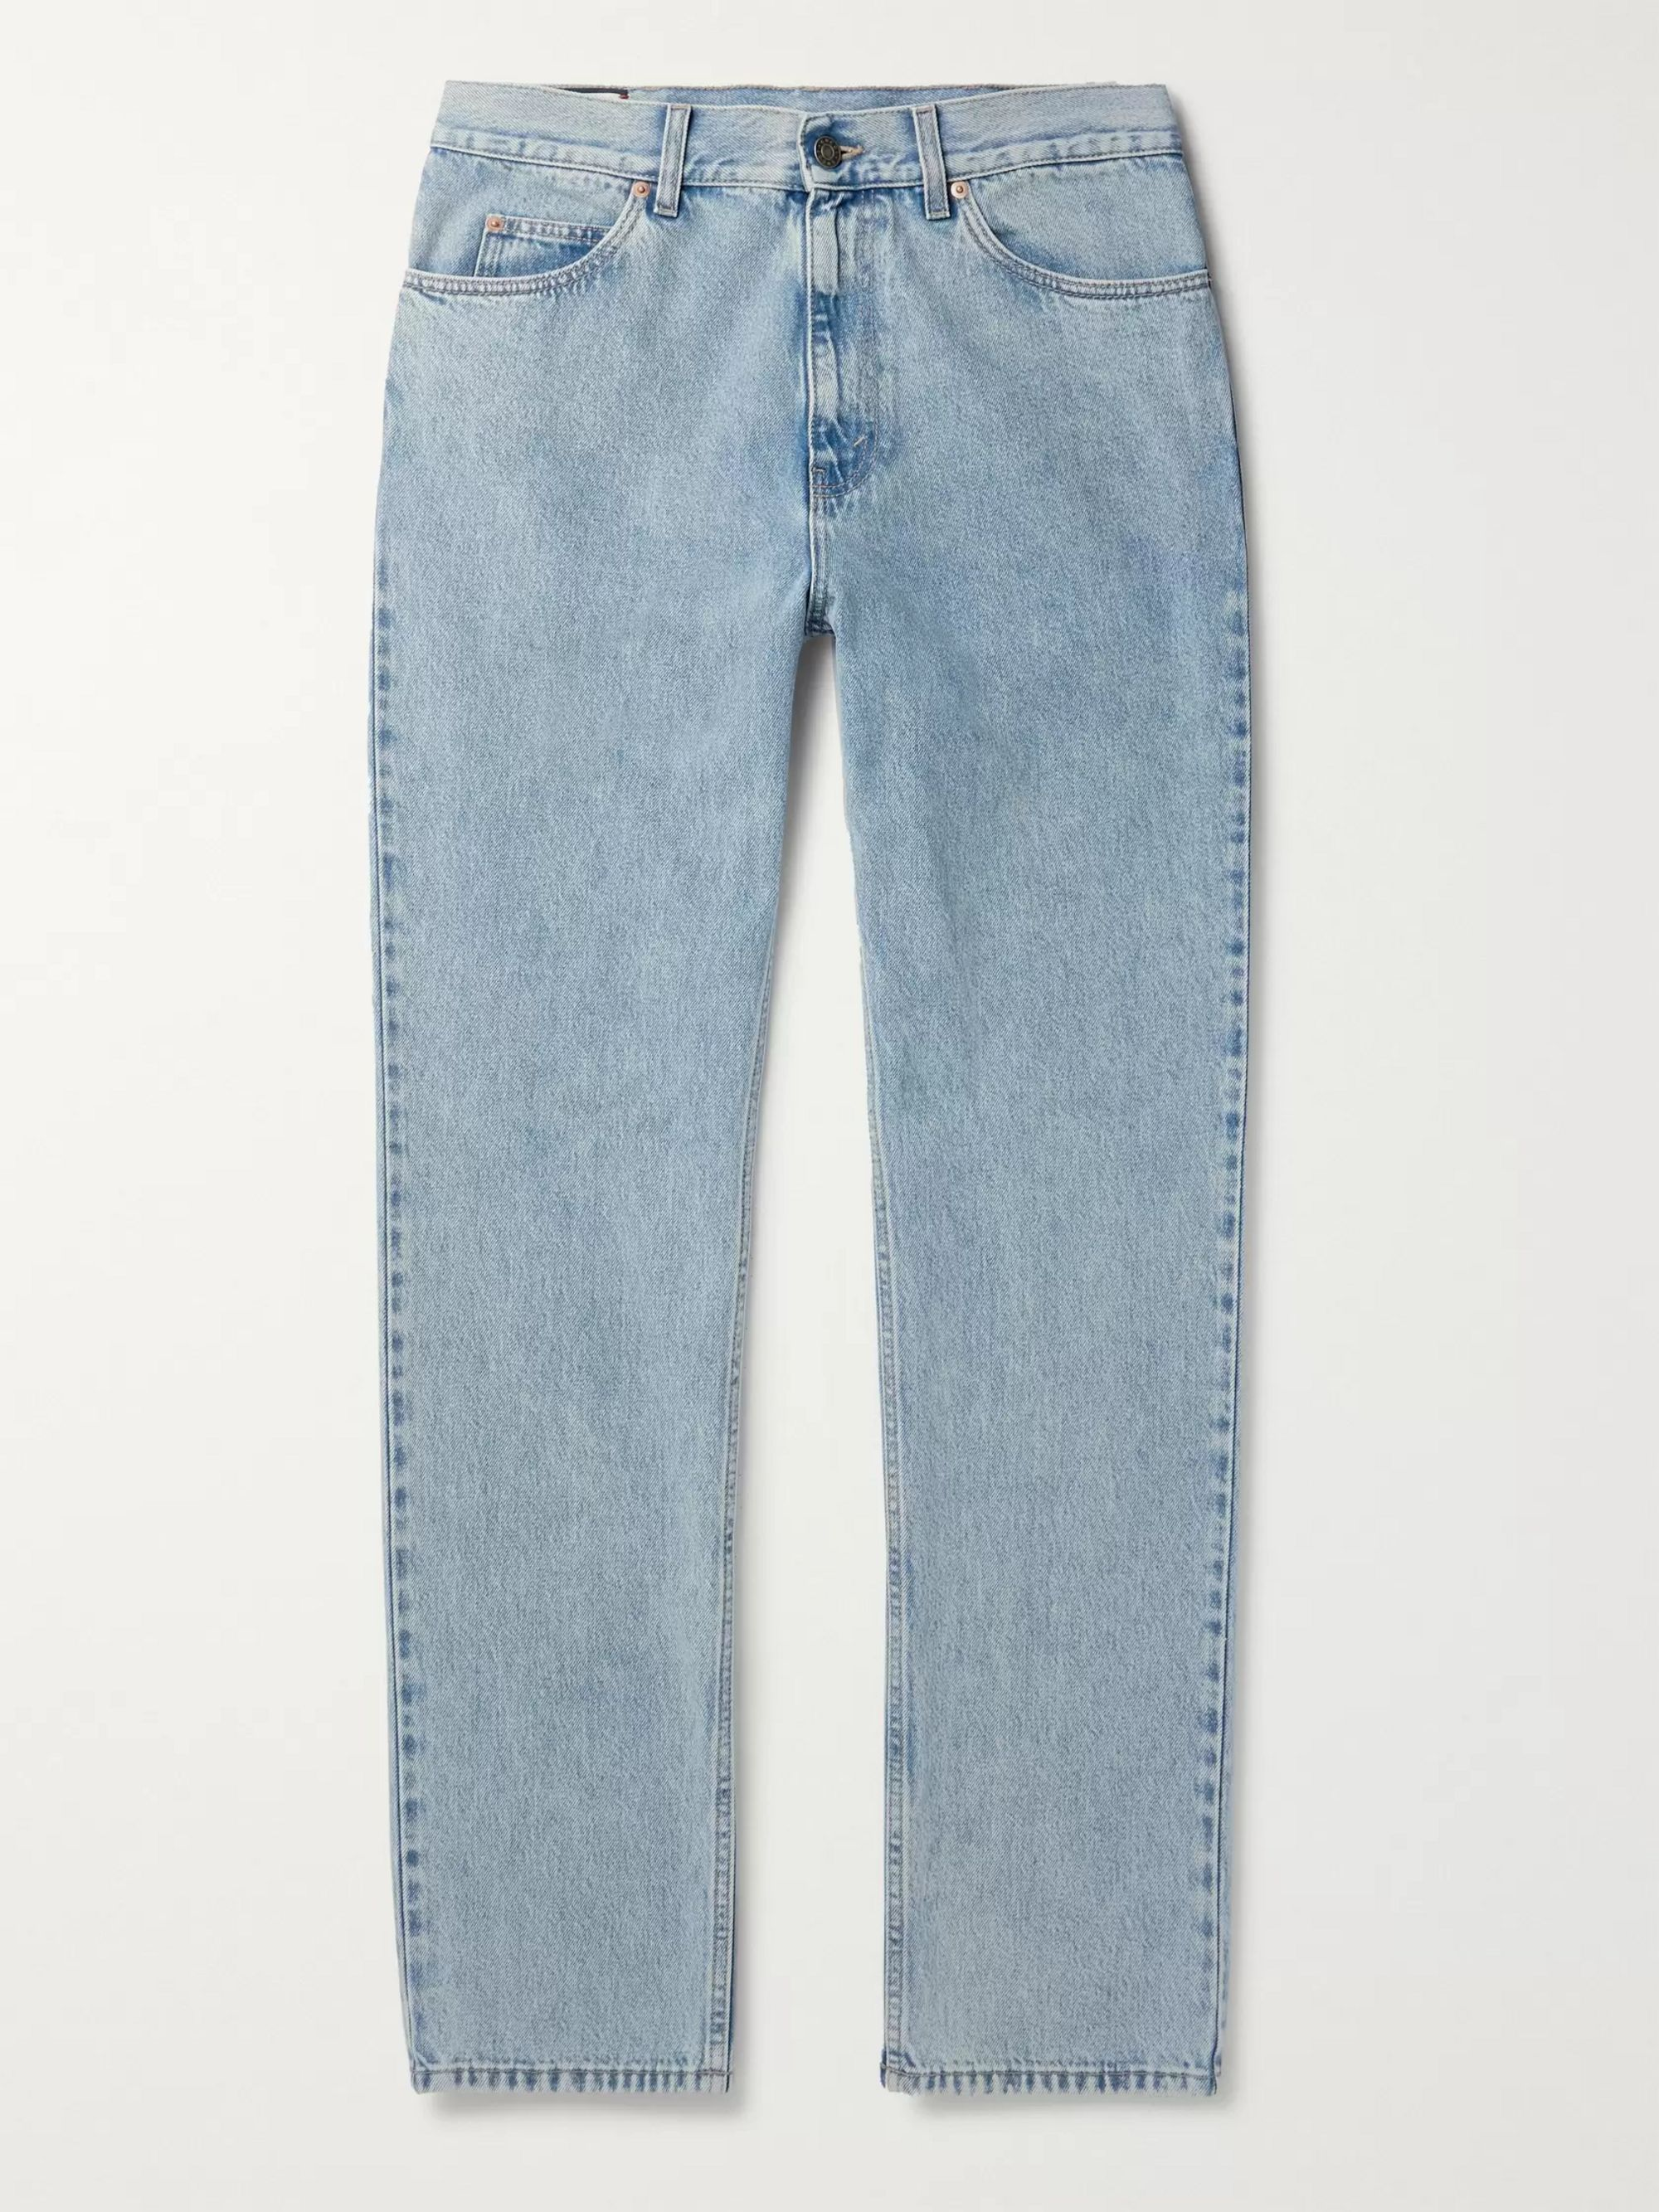 Gucci Denim Jeans